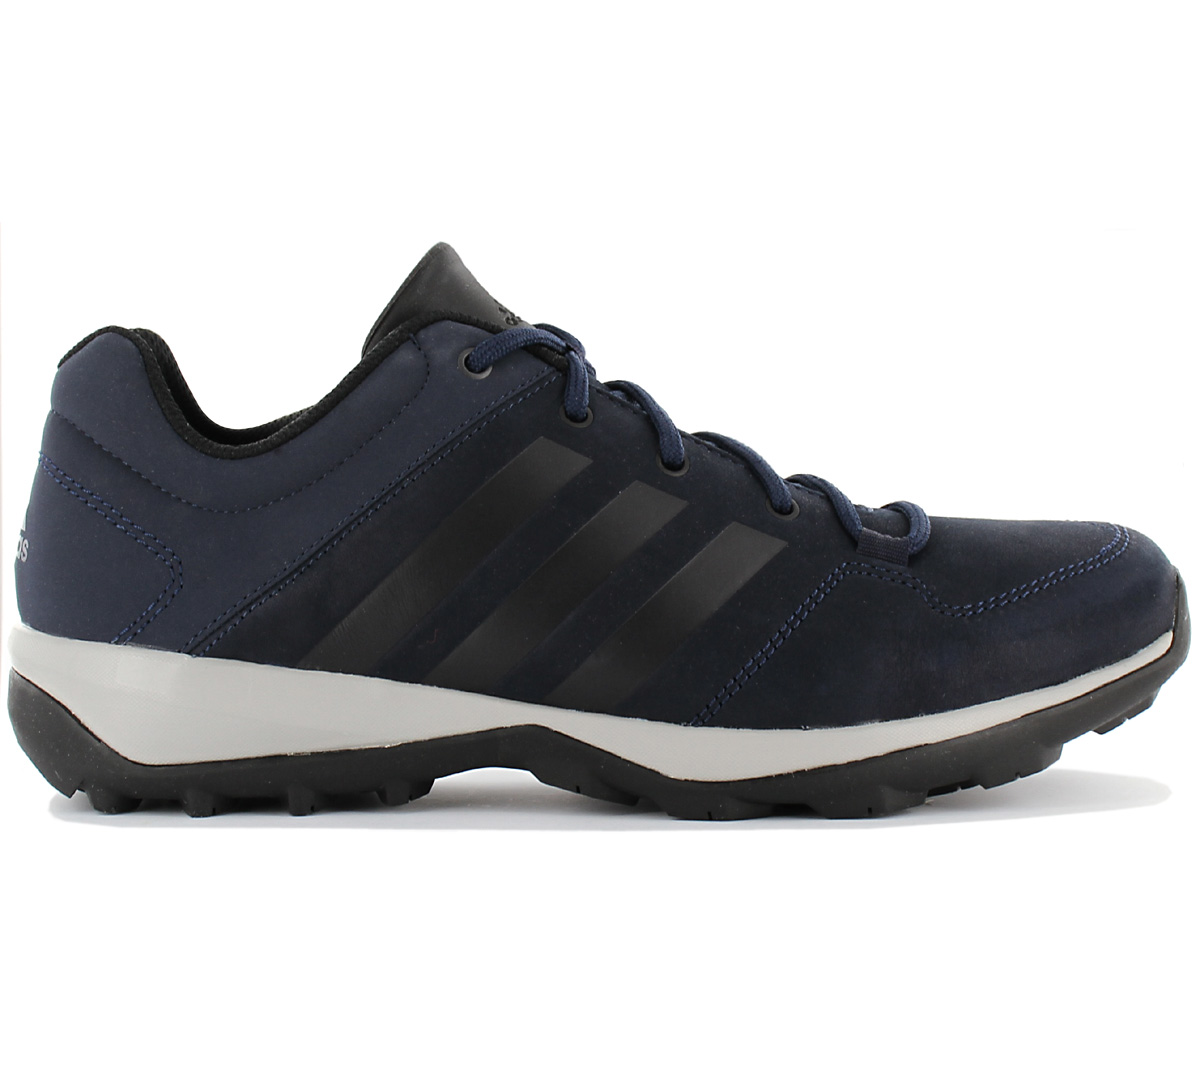 Details about Adidas Daroga plus Leather Men's Hiking Shoes Leather Outdoor Shoes Lea B27272